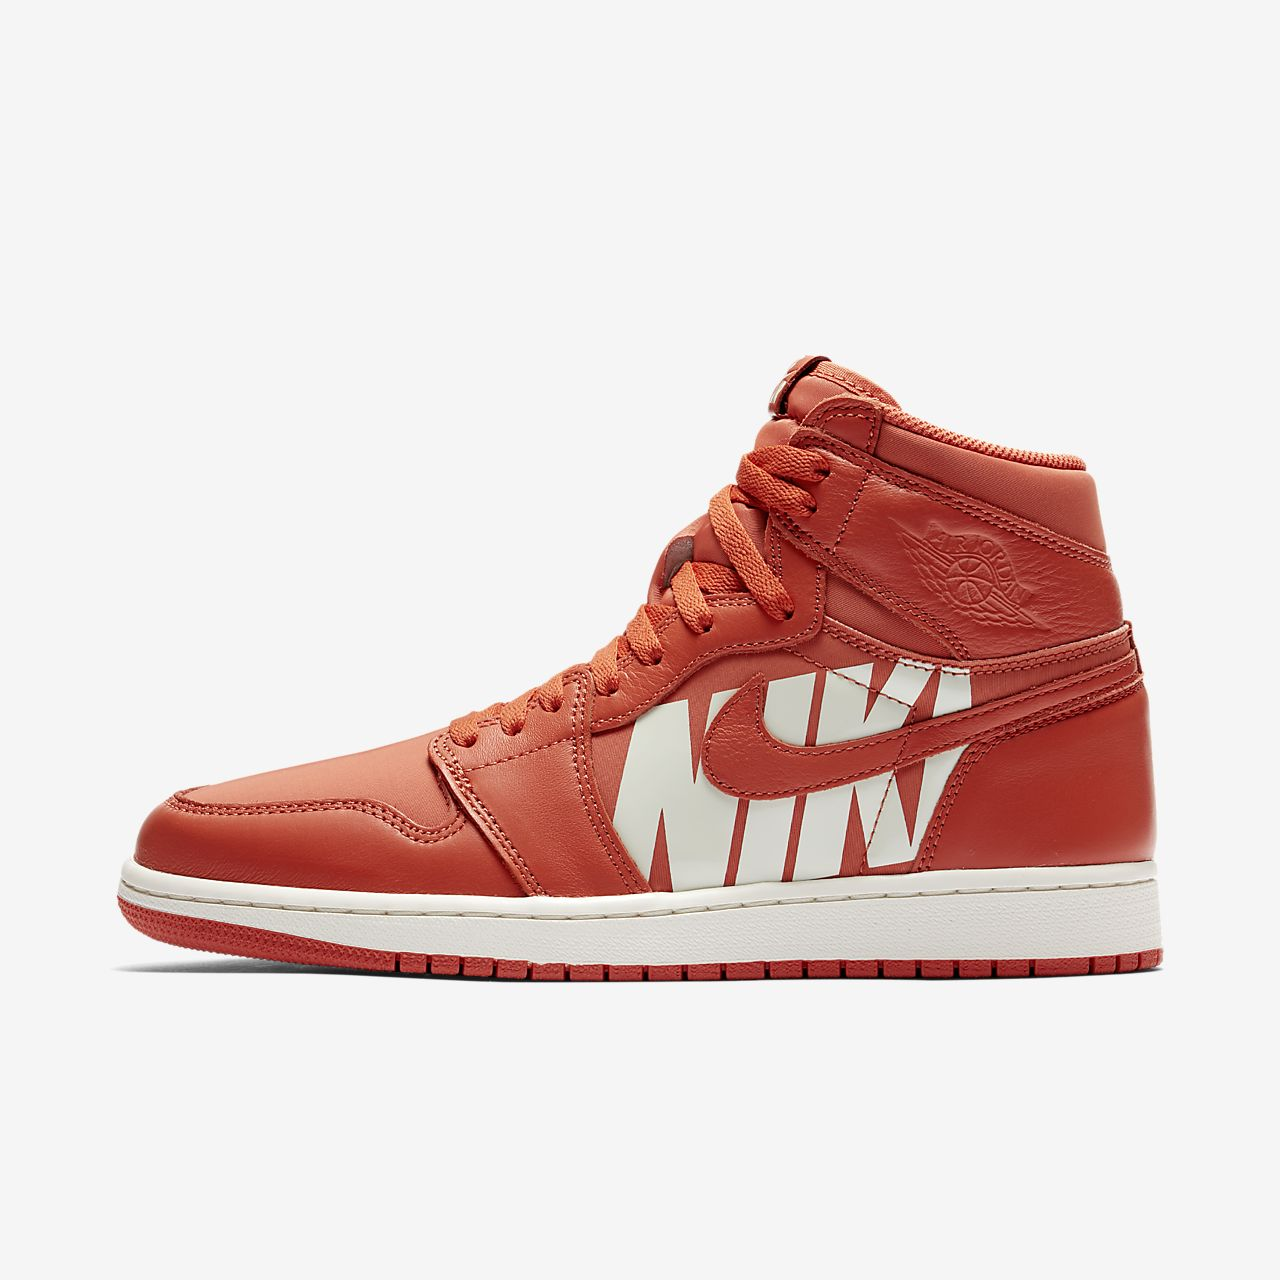 3f35b577fe9 Air Jordan 1 Retro High OG Shoe. Nike.com ZA